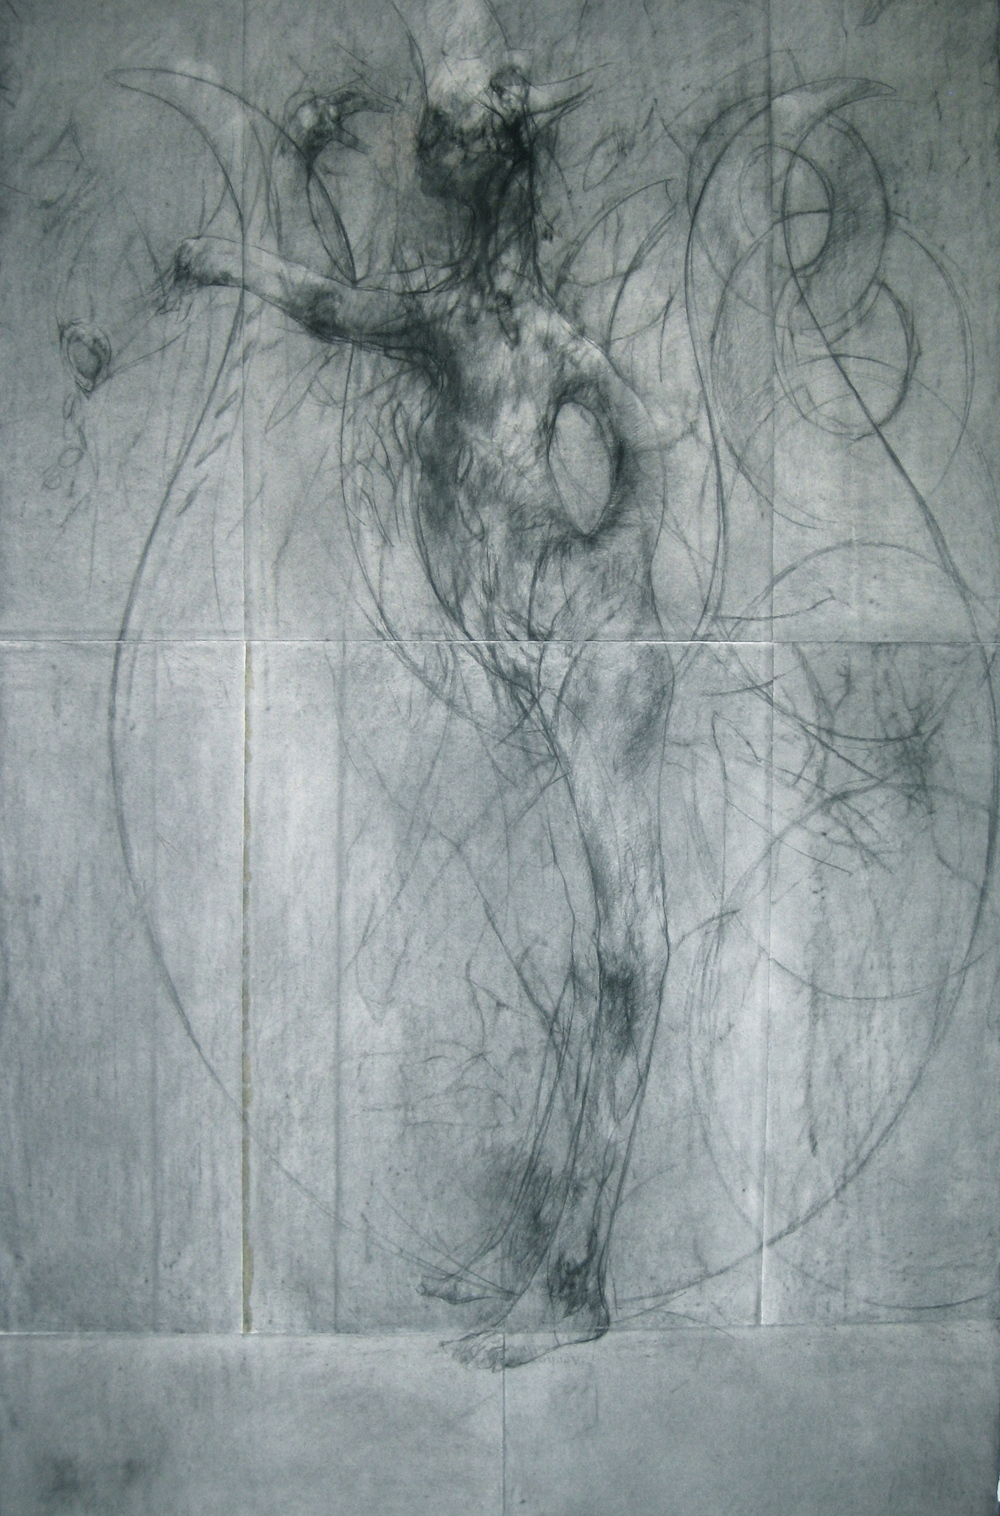 lyre, conté and charcoal on arches paper 181cm x 112cm